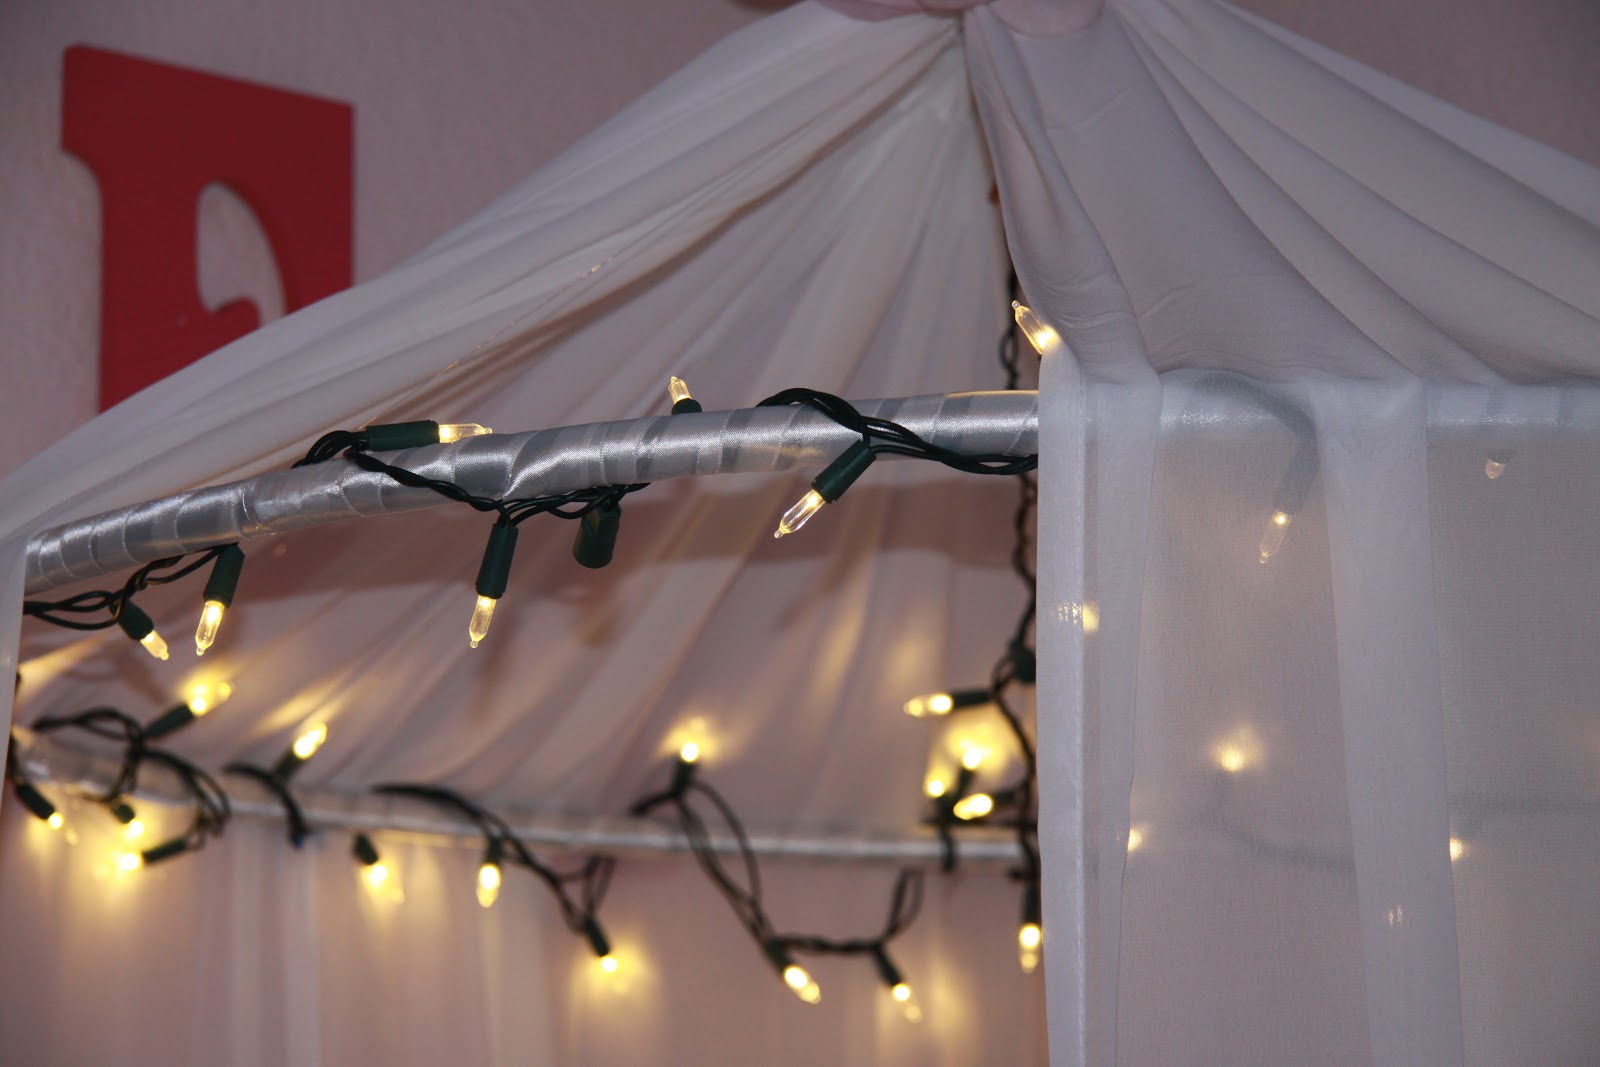 How to make a bed canopy for girls - Little Girls Bed Canopy With Lights